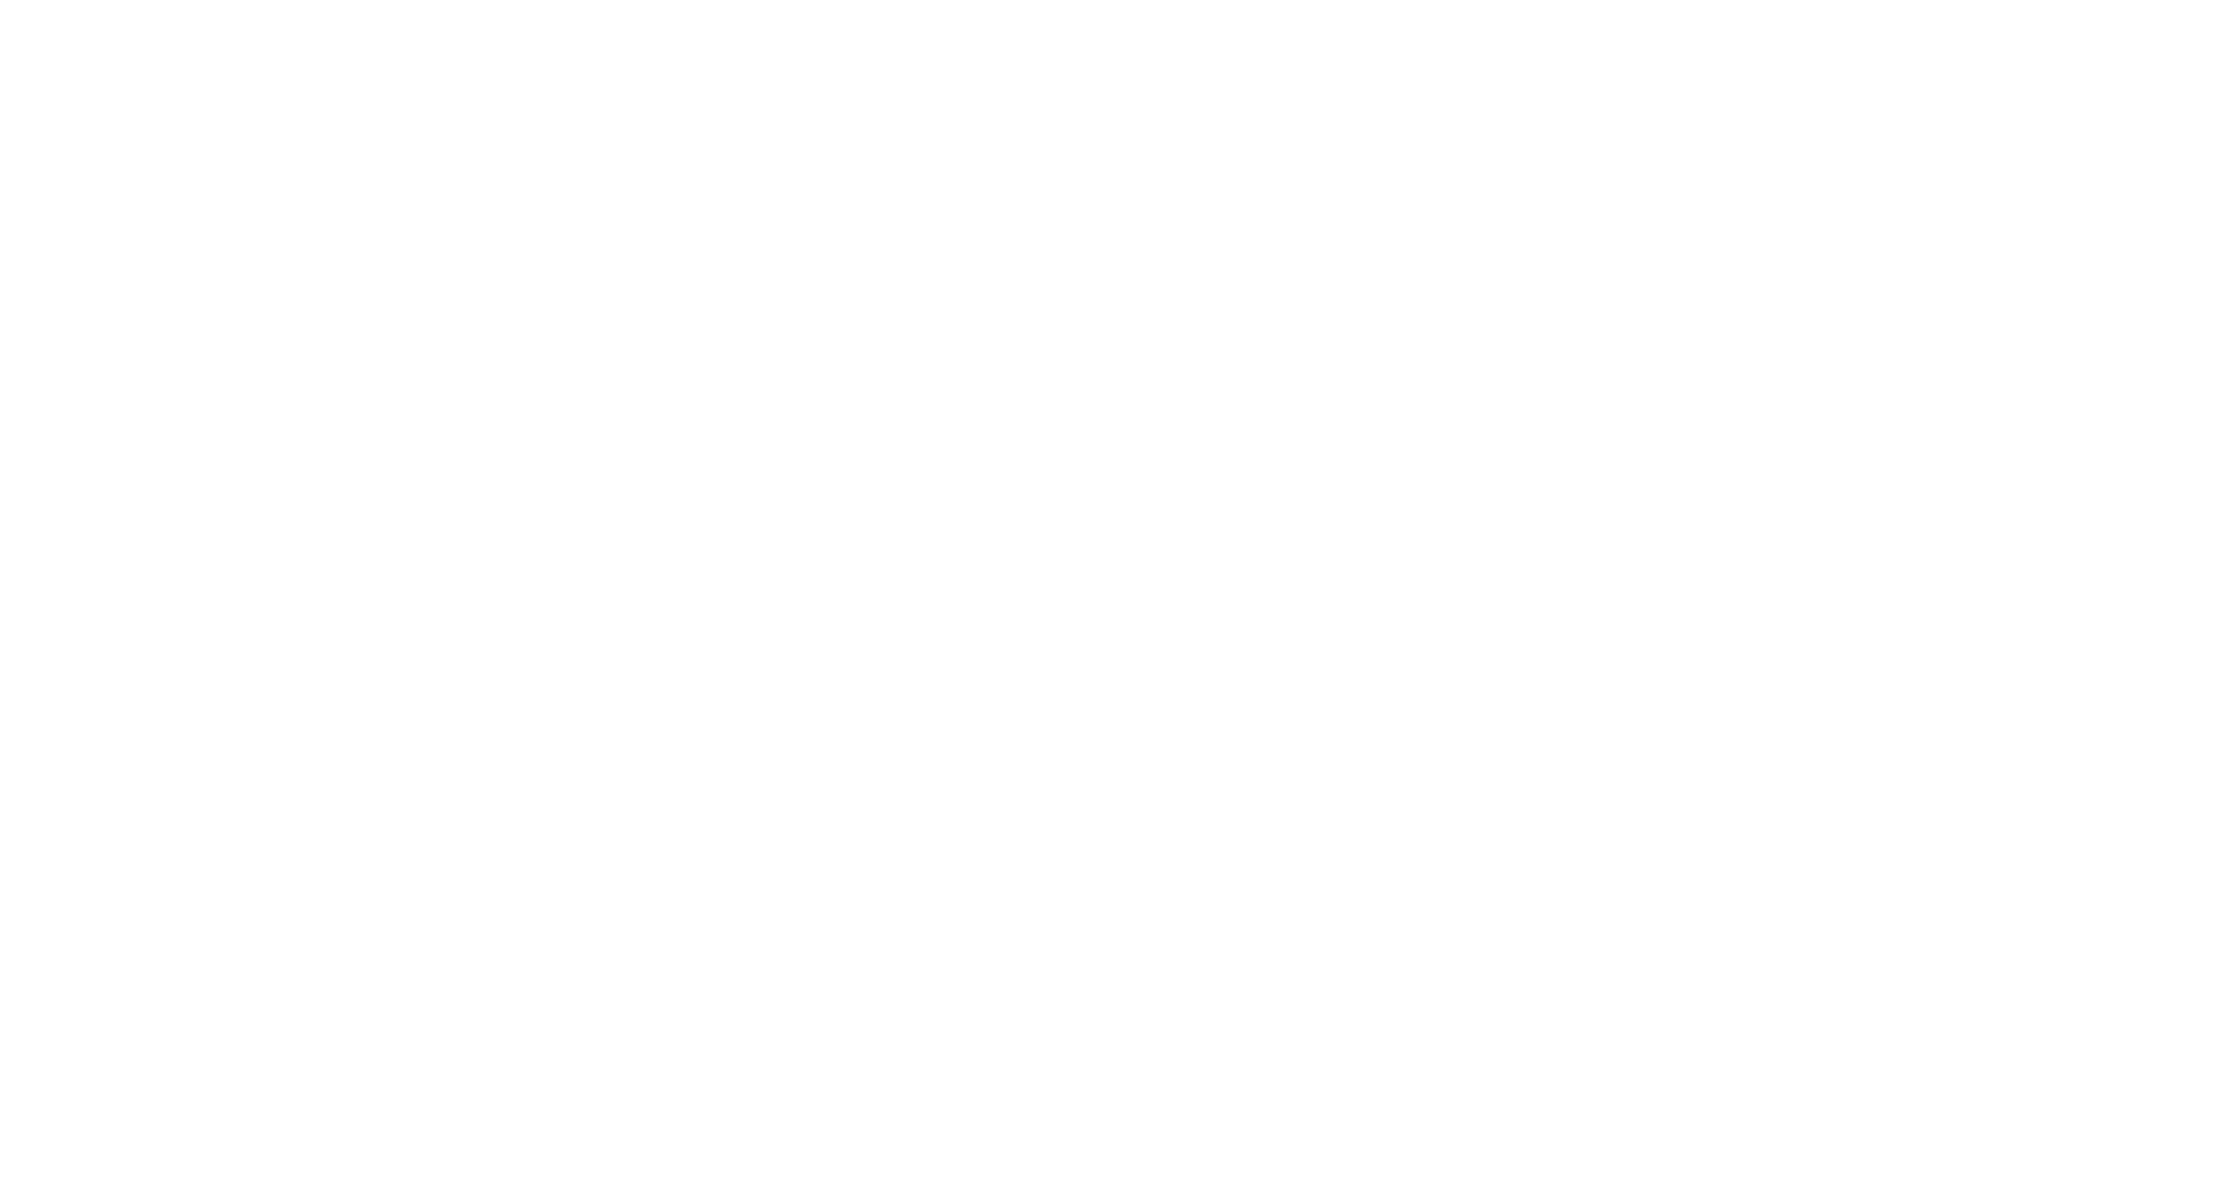 Acworth Florist Flower Delivery By House Of Flowers